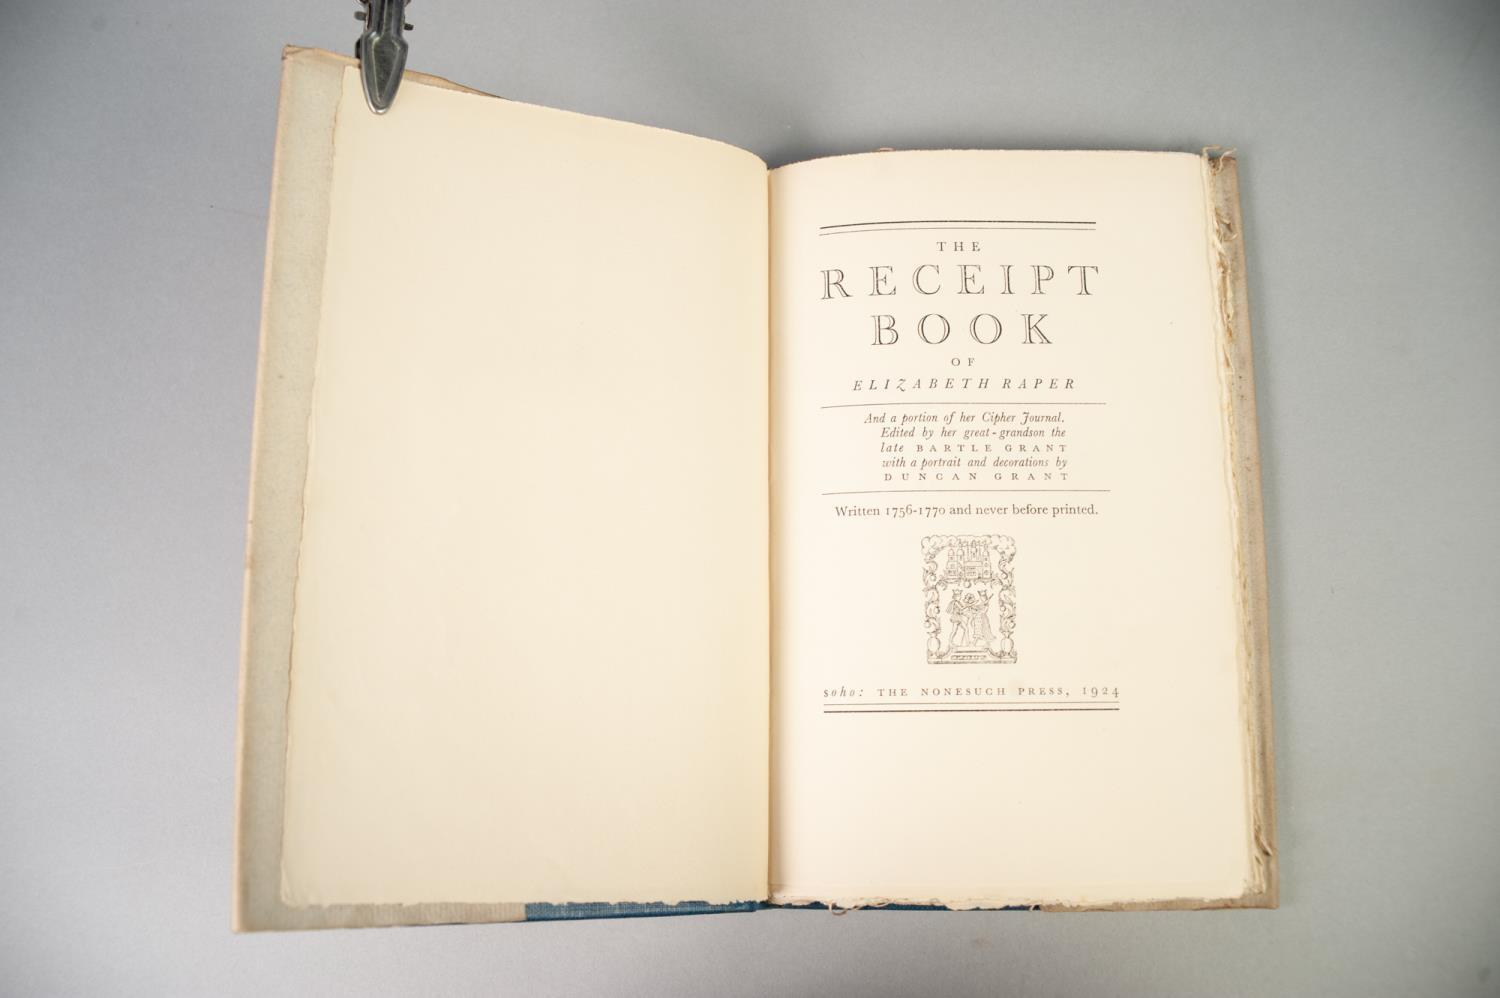 PRIVATE PRESS - TWO TITLES FROM THE NONESUCH PRESS to include The Receipt Book of Elizabeth Raper - Image 3 of 7